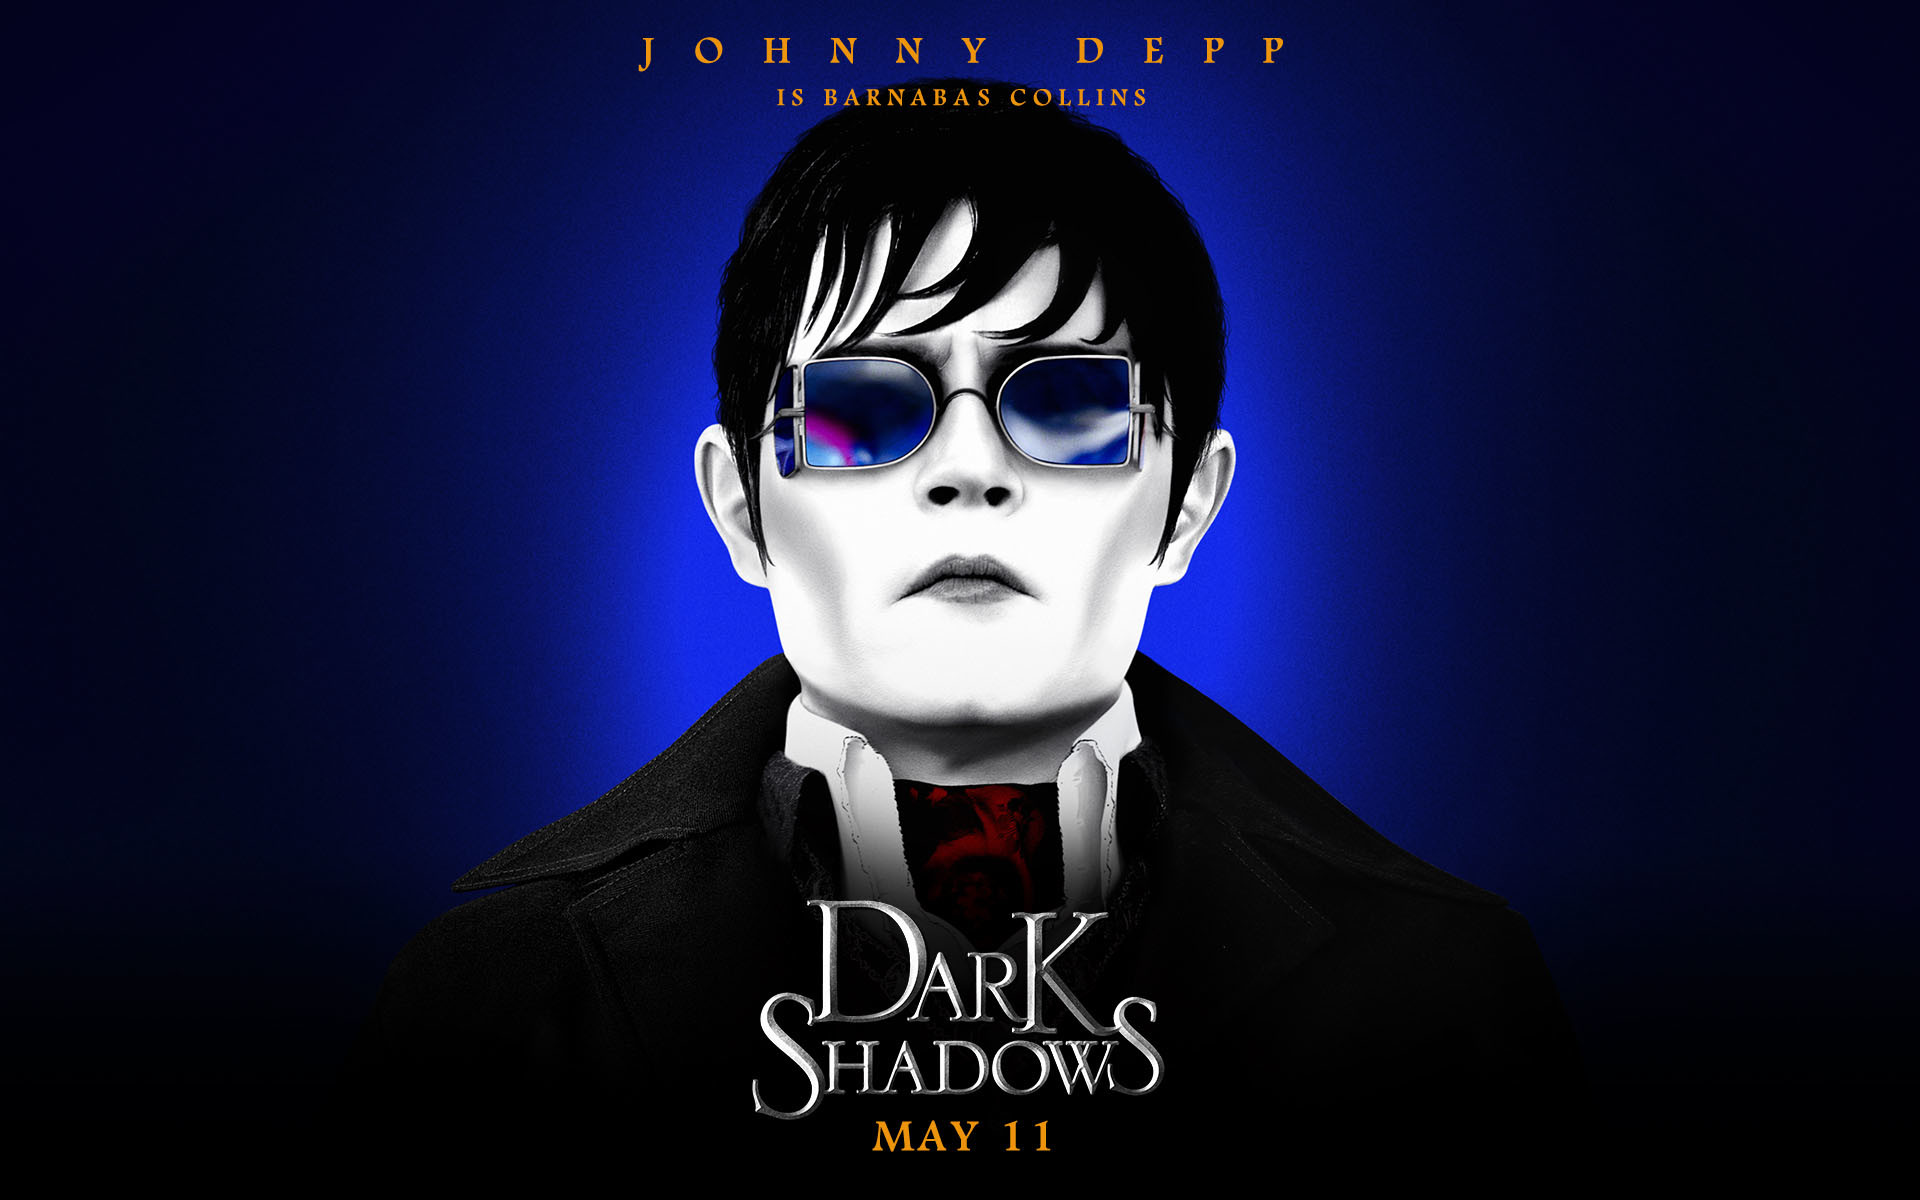 1920x1200 Dark Shadows HD Wallpaper | Background Image |  | ID:239206 -  Wallpaper Abyss